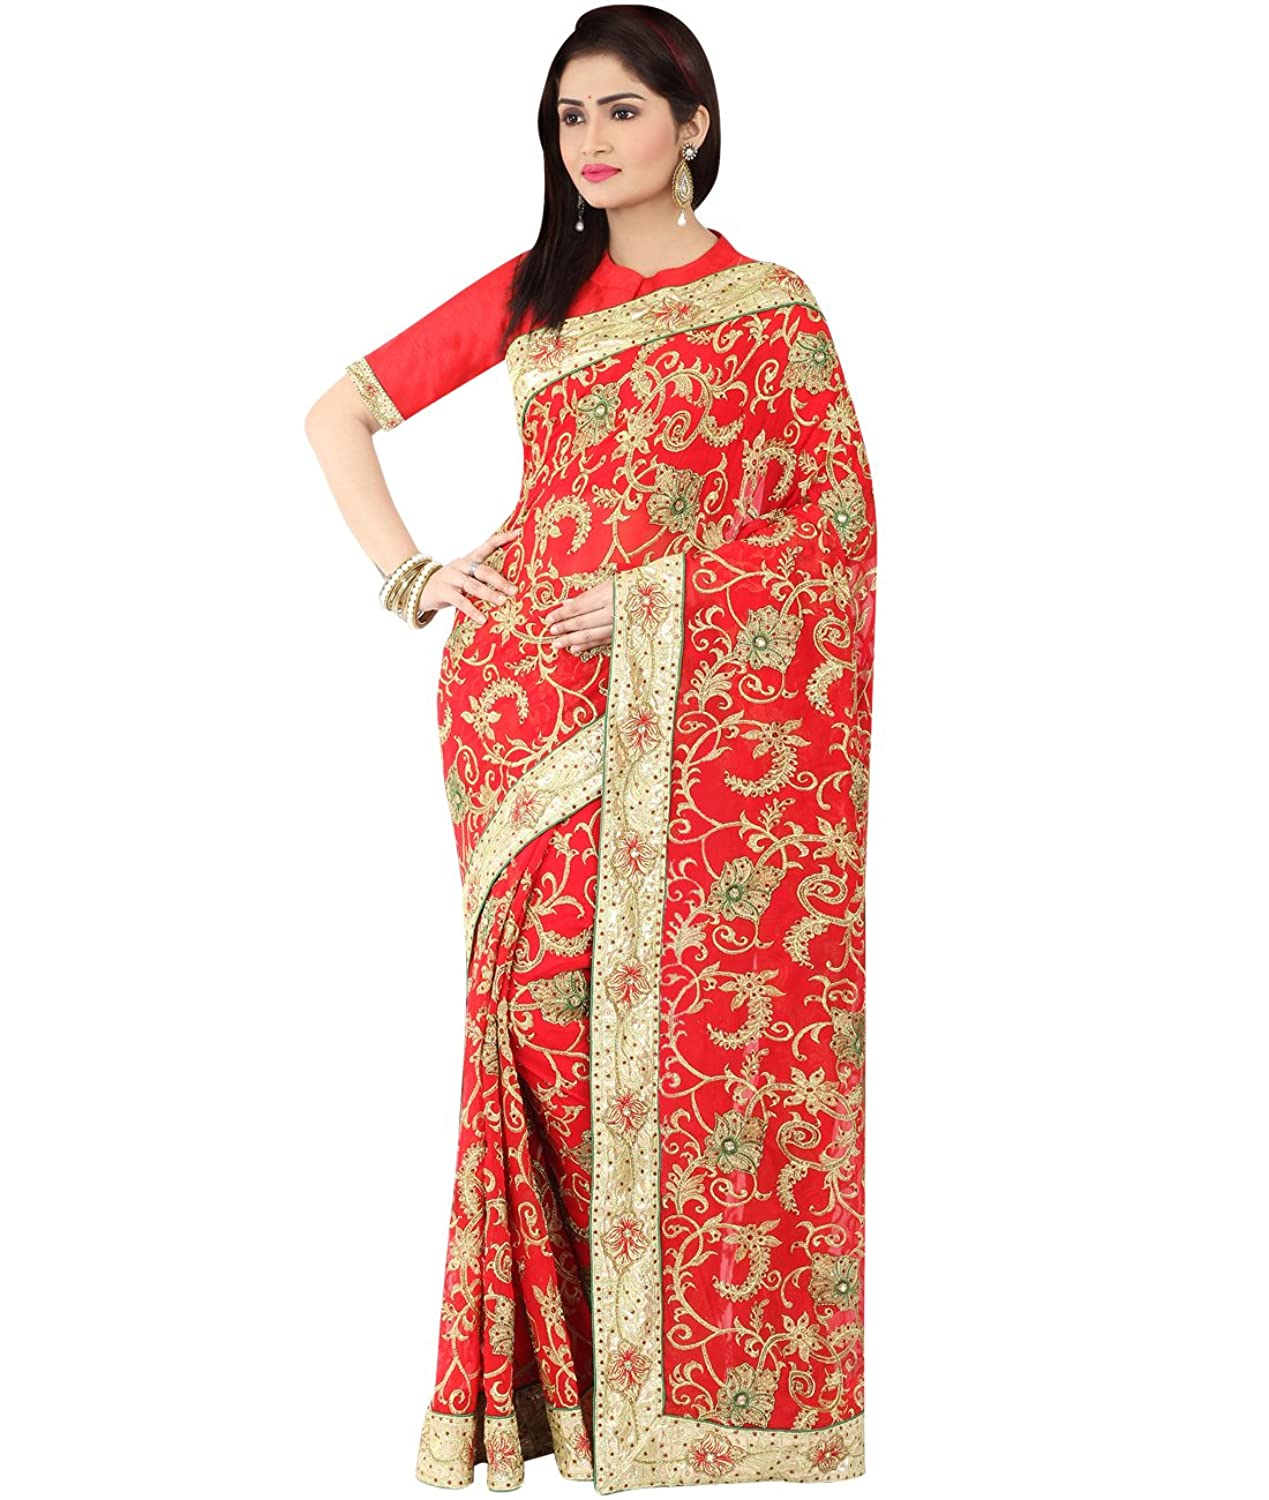 Indian Ethnic Faux Georgette Red Bridal & Wedding Saree